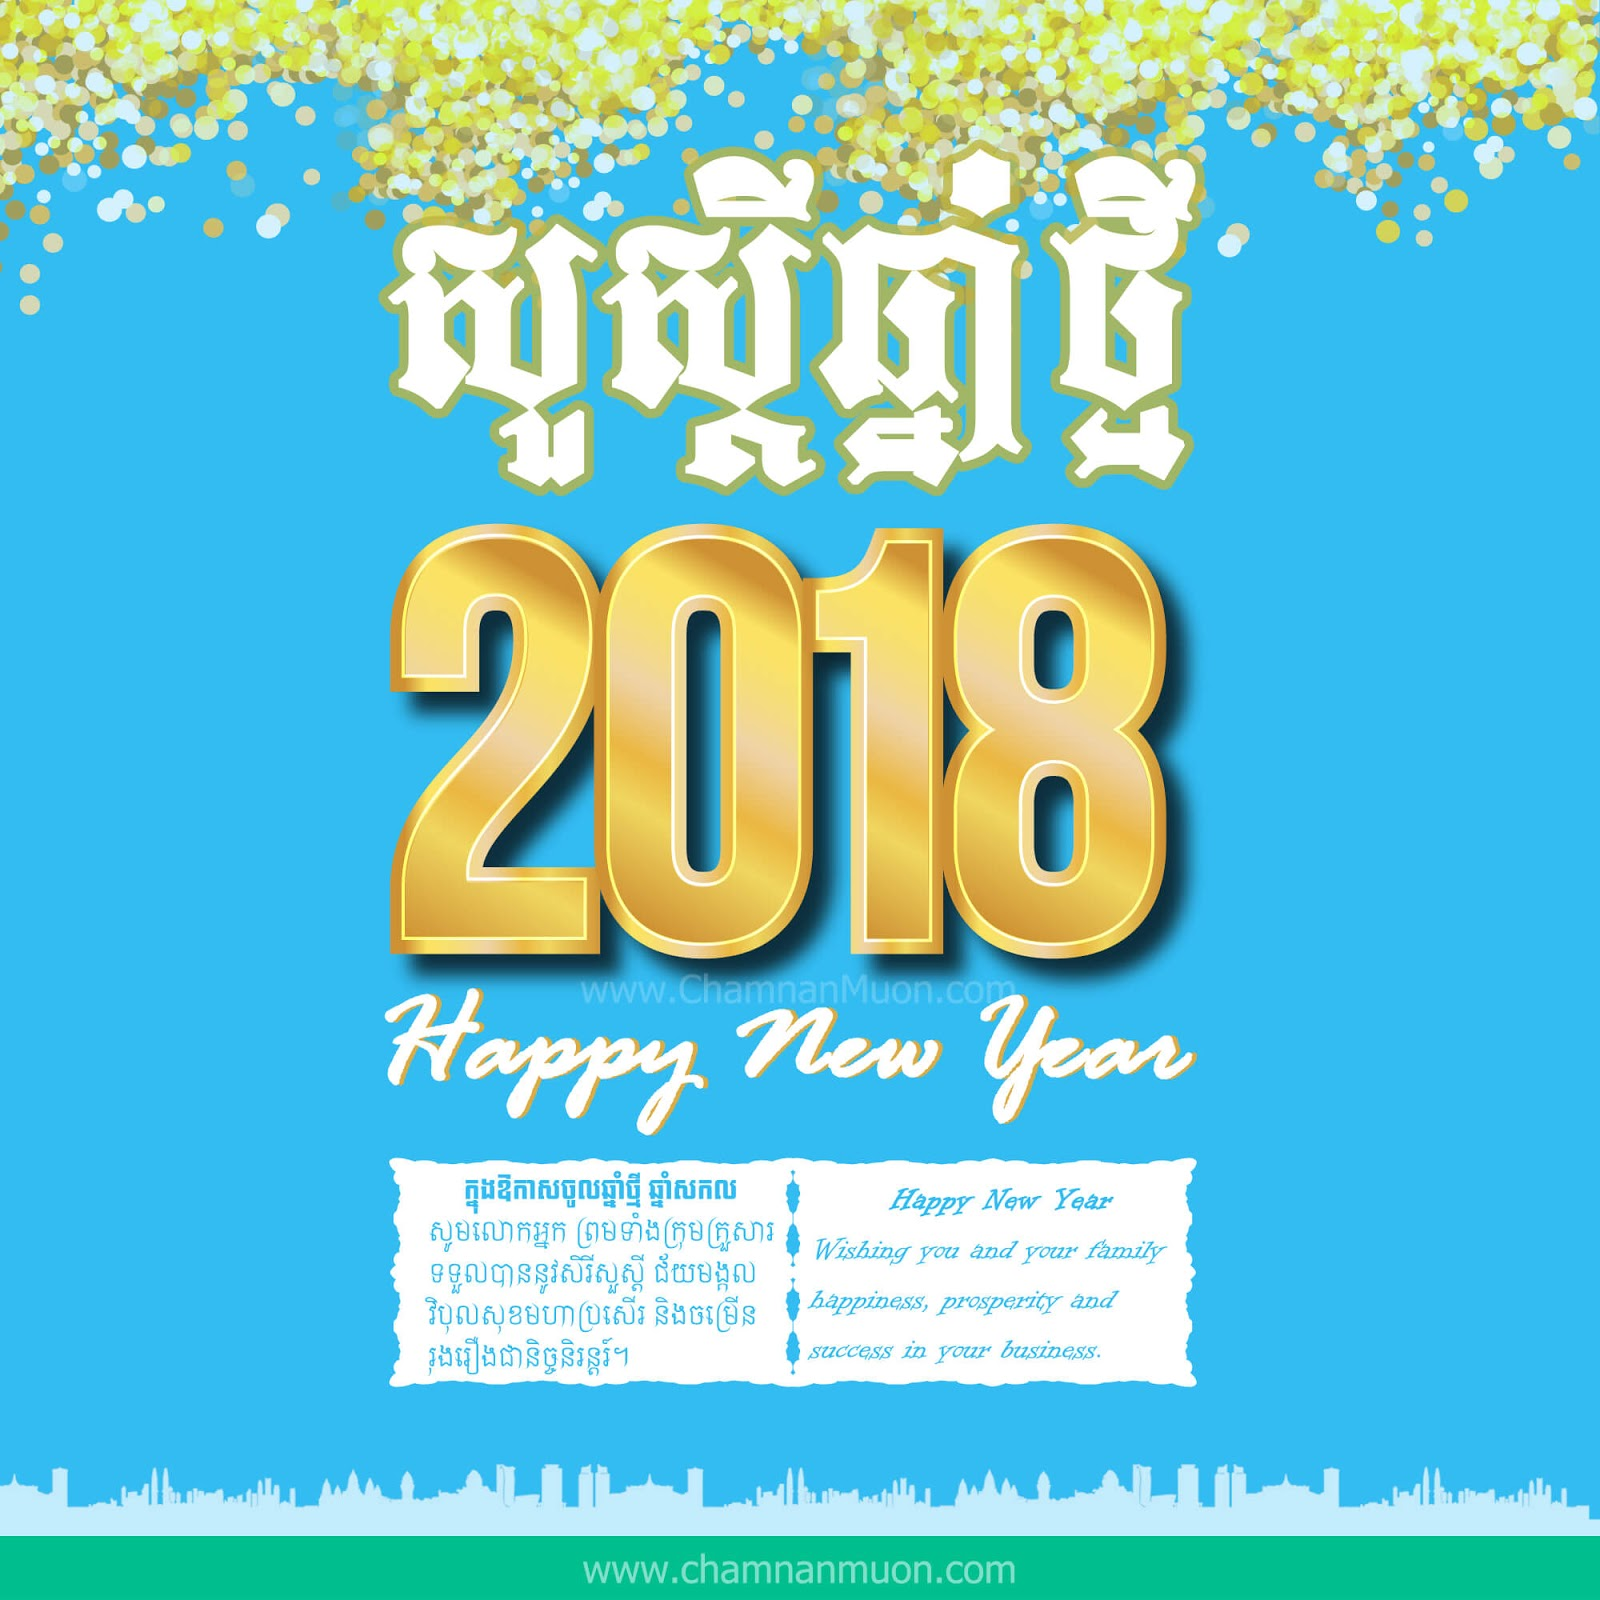 Happy New Year 2018 - Khmer greeting card by Chamnan